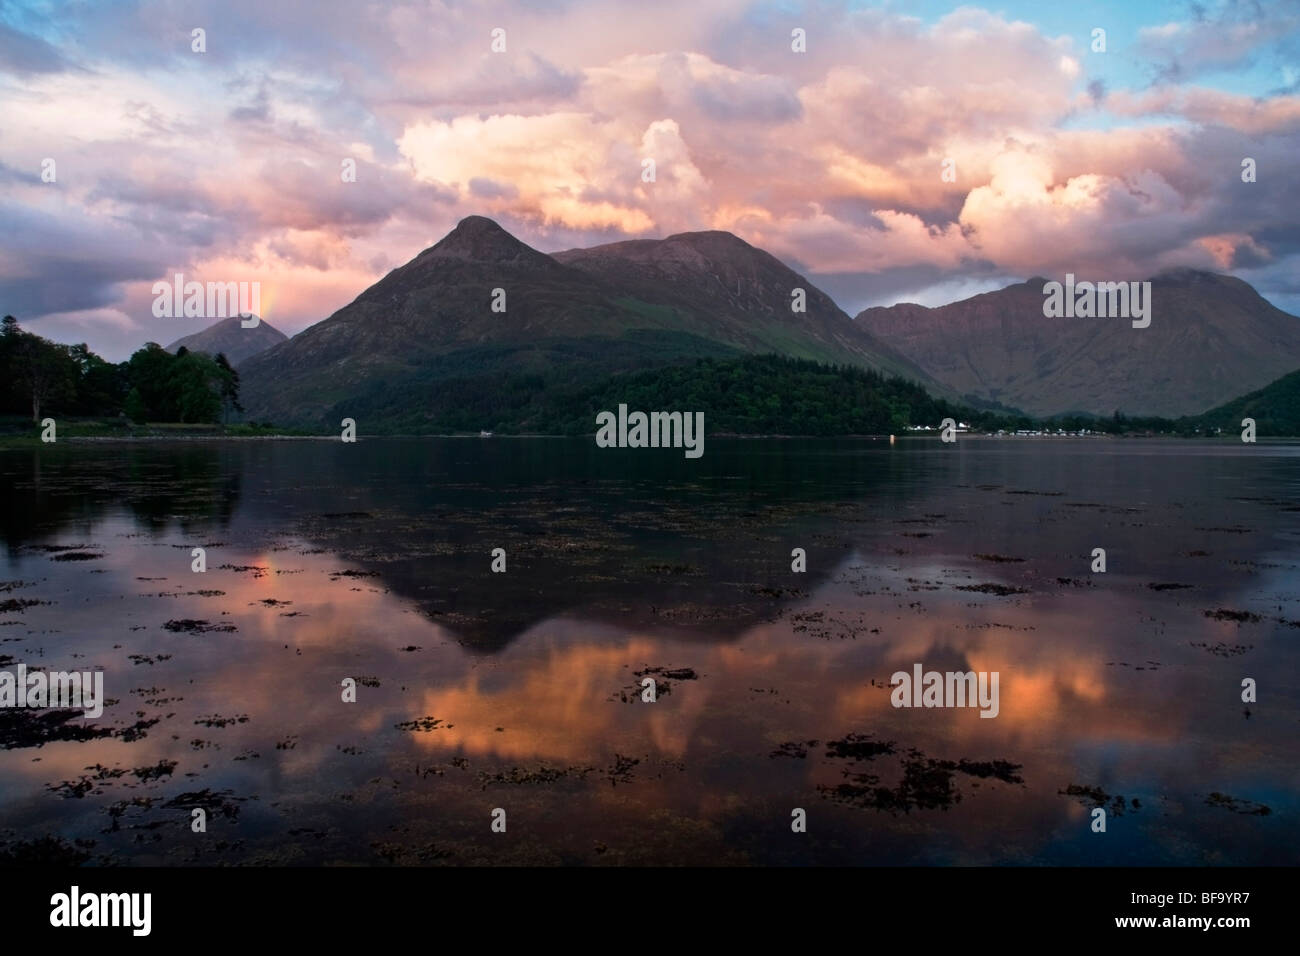 Loch Leven and Pap of Glencoe at sunset, Highlands, Scotland, UK - Stock Image